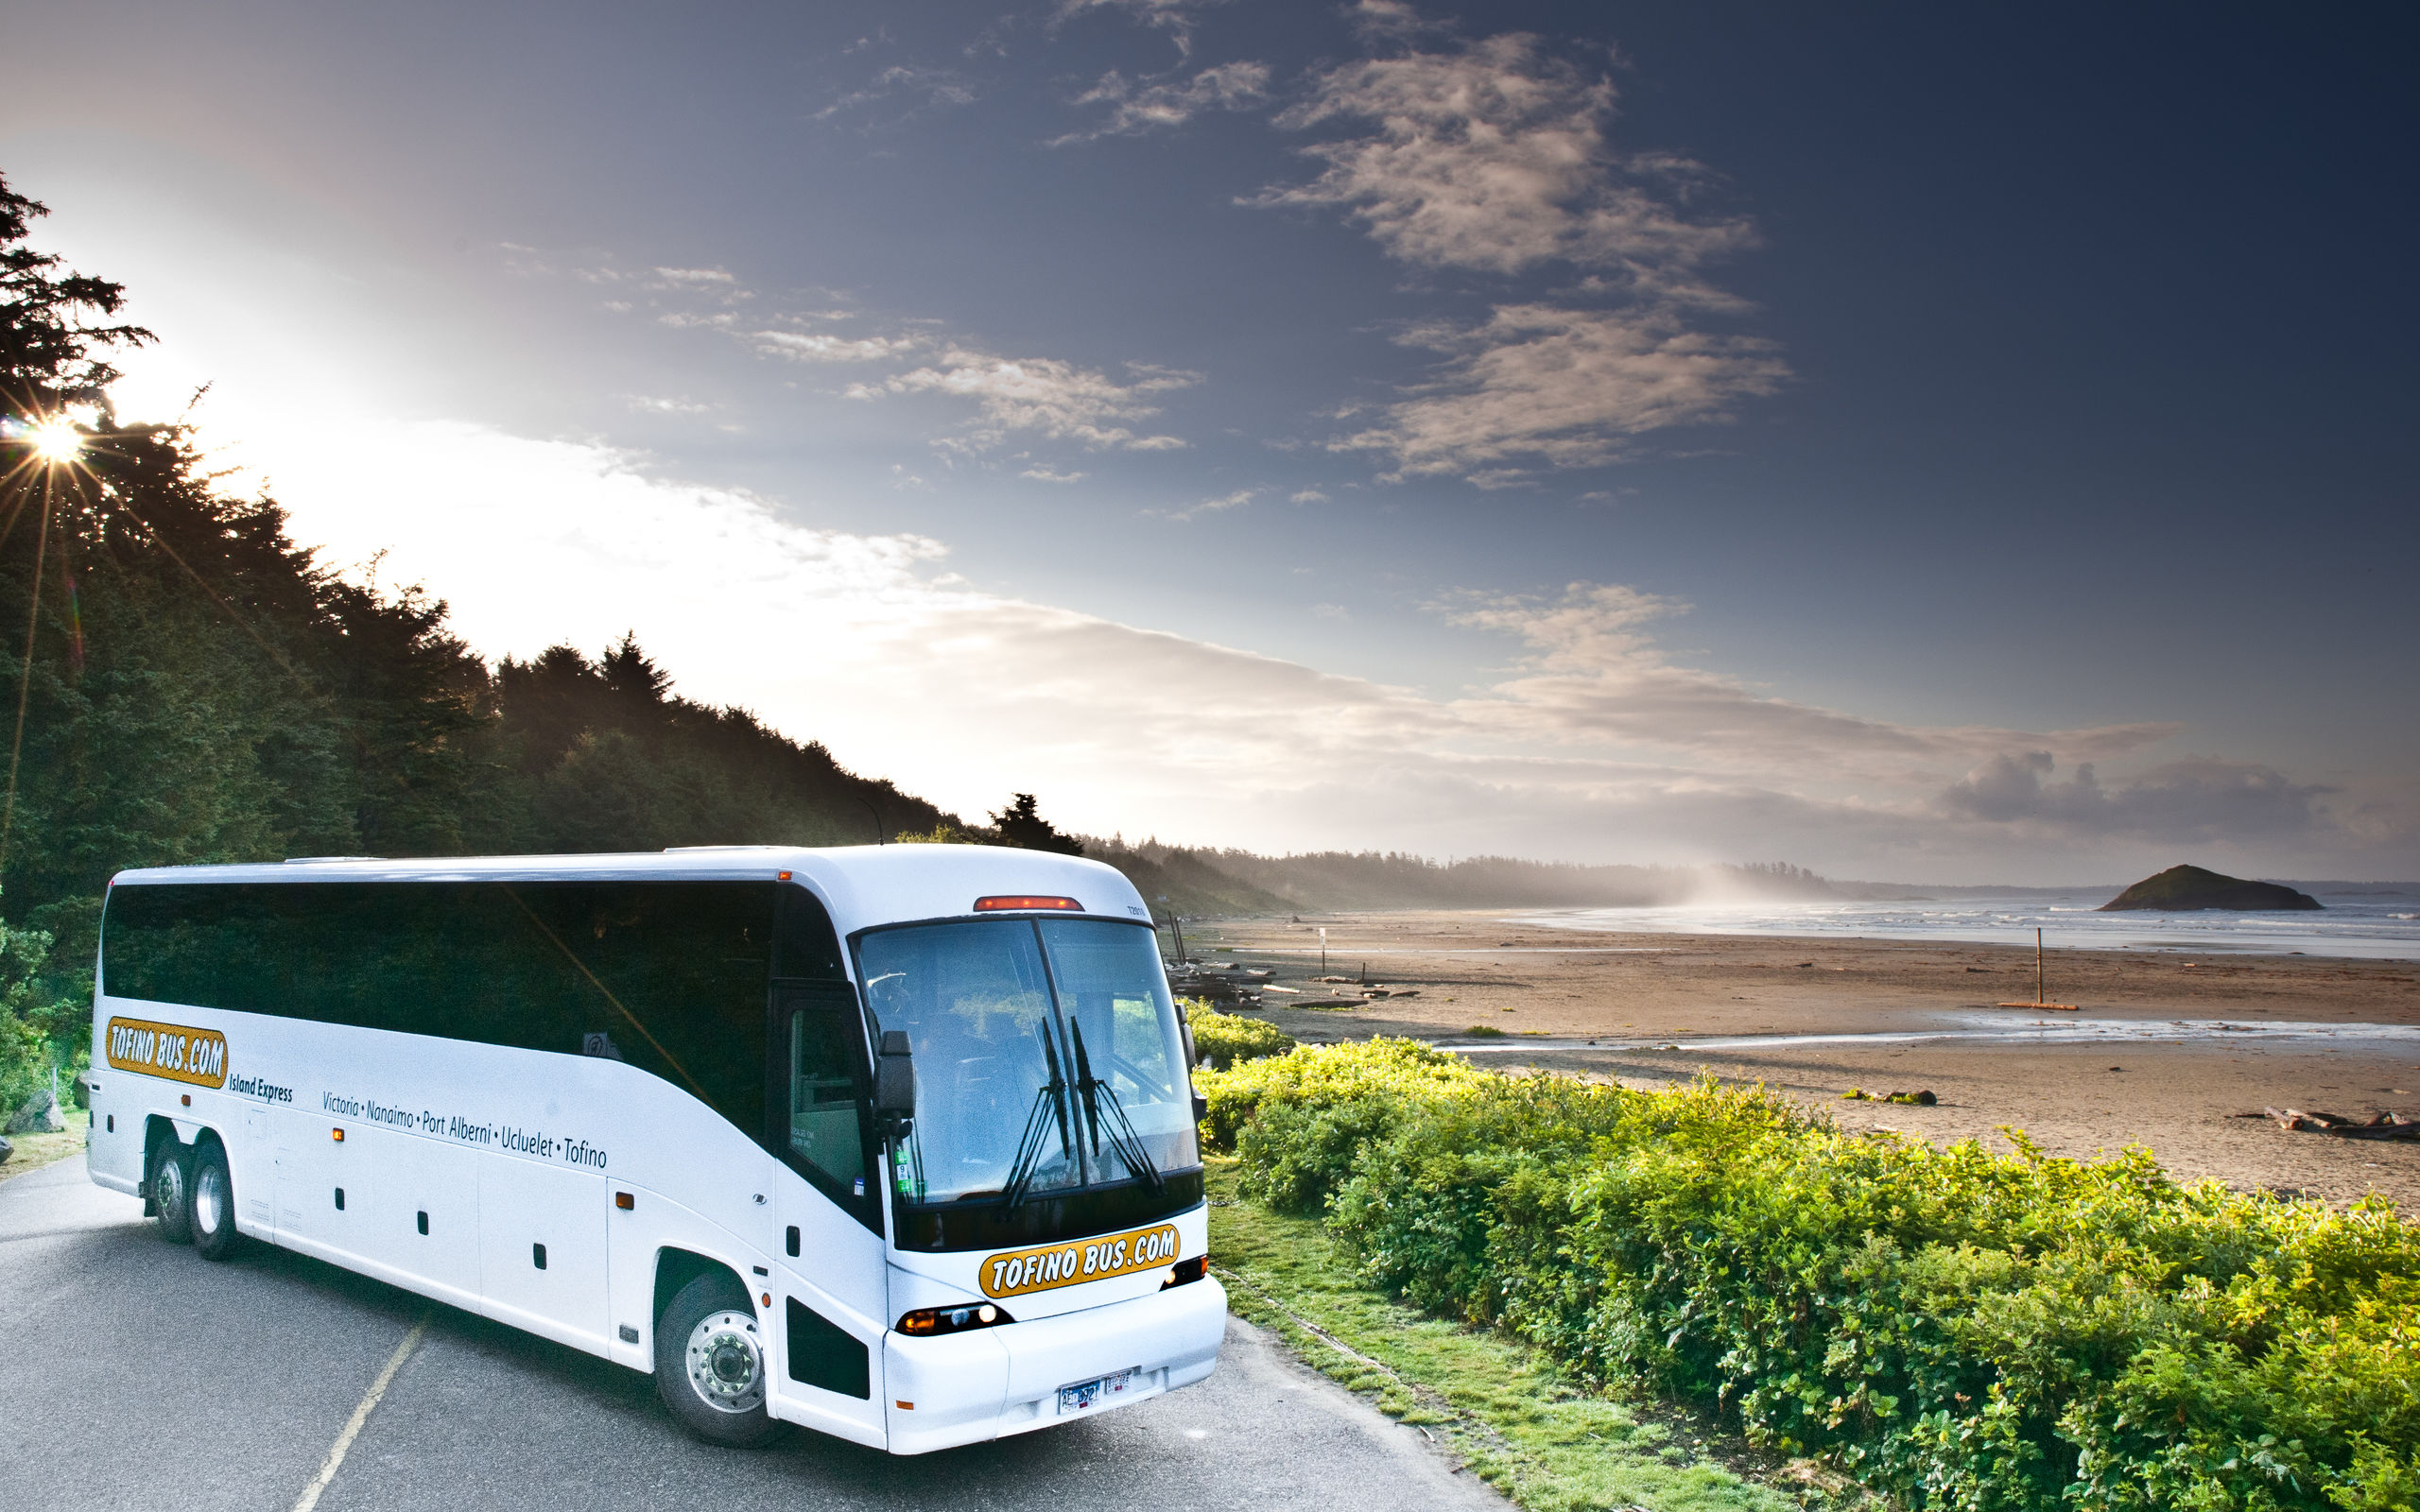 Tofino bus coupons